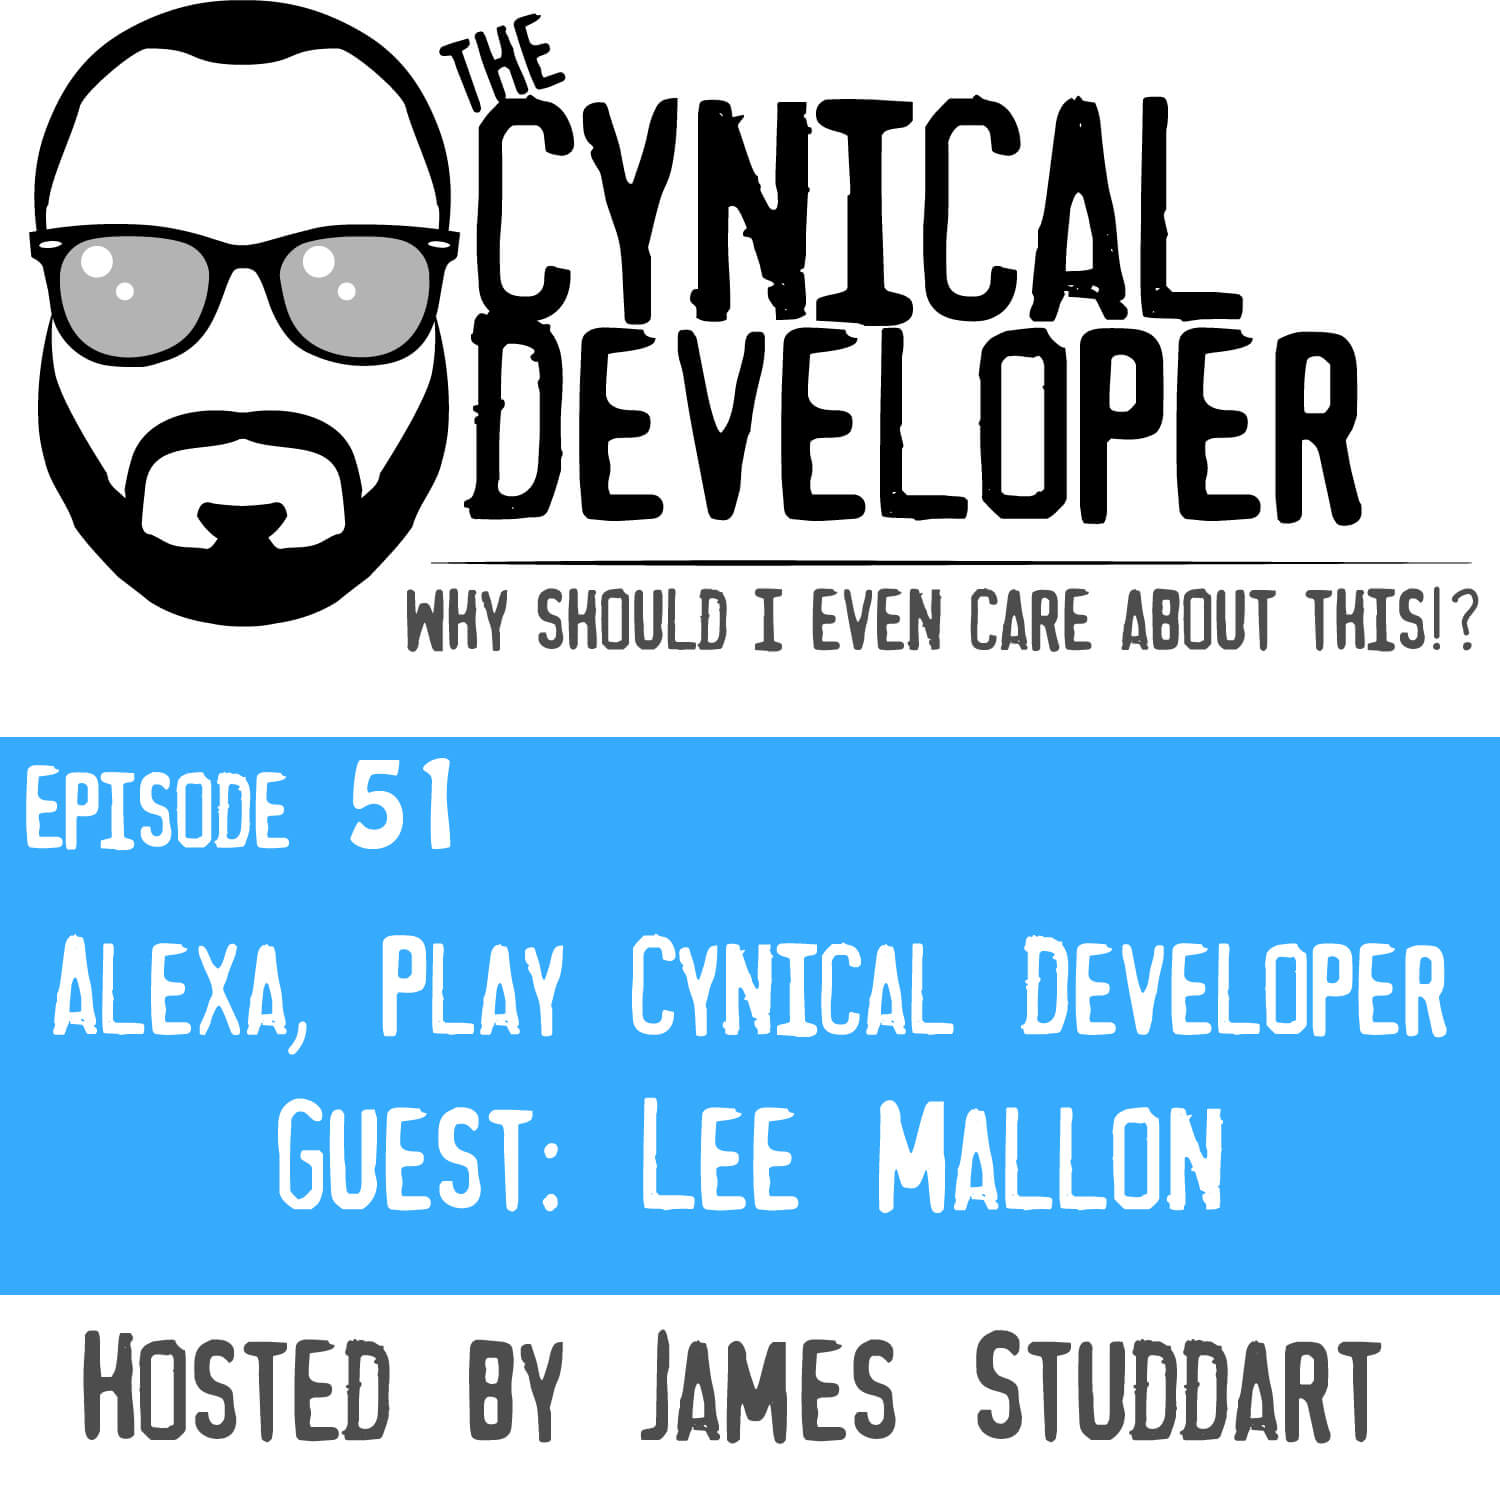 Episode 51 - Alexa play Cynical Developer!